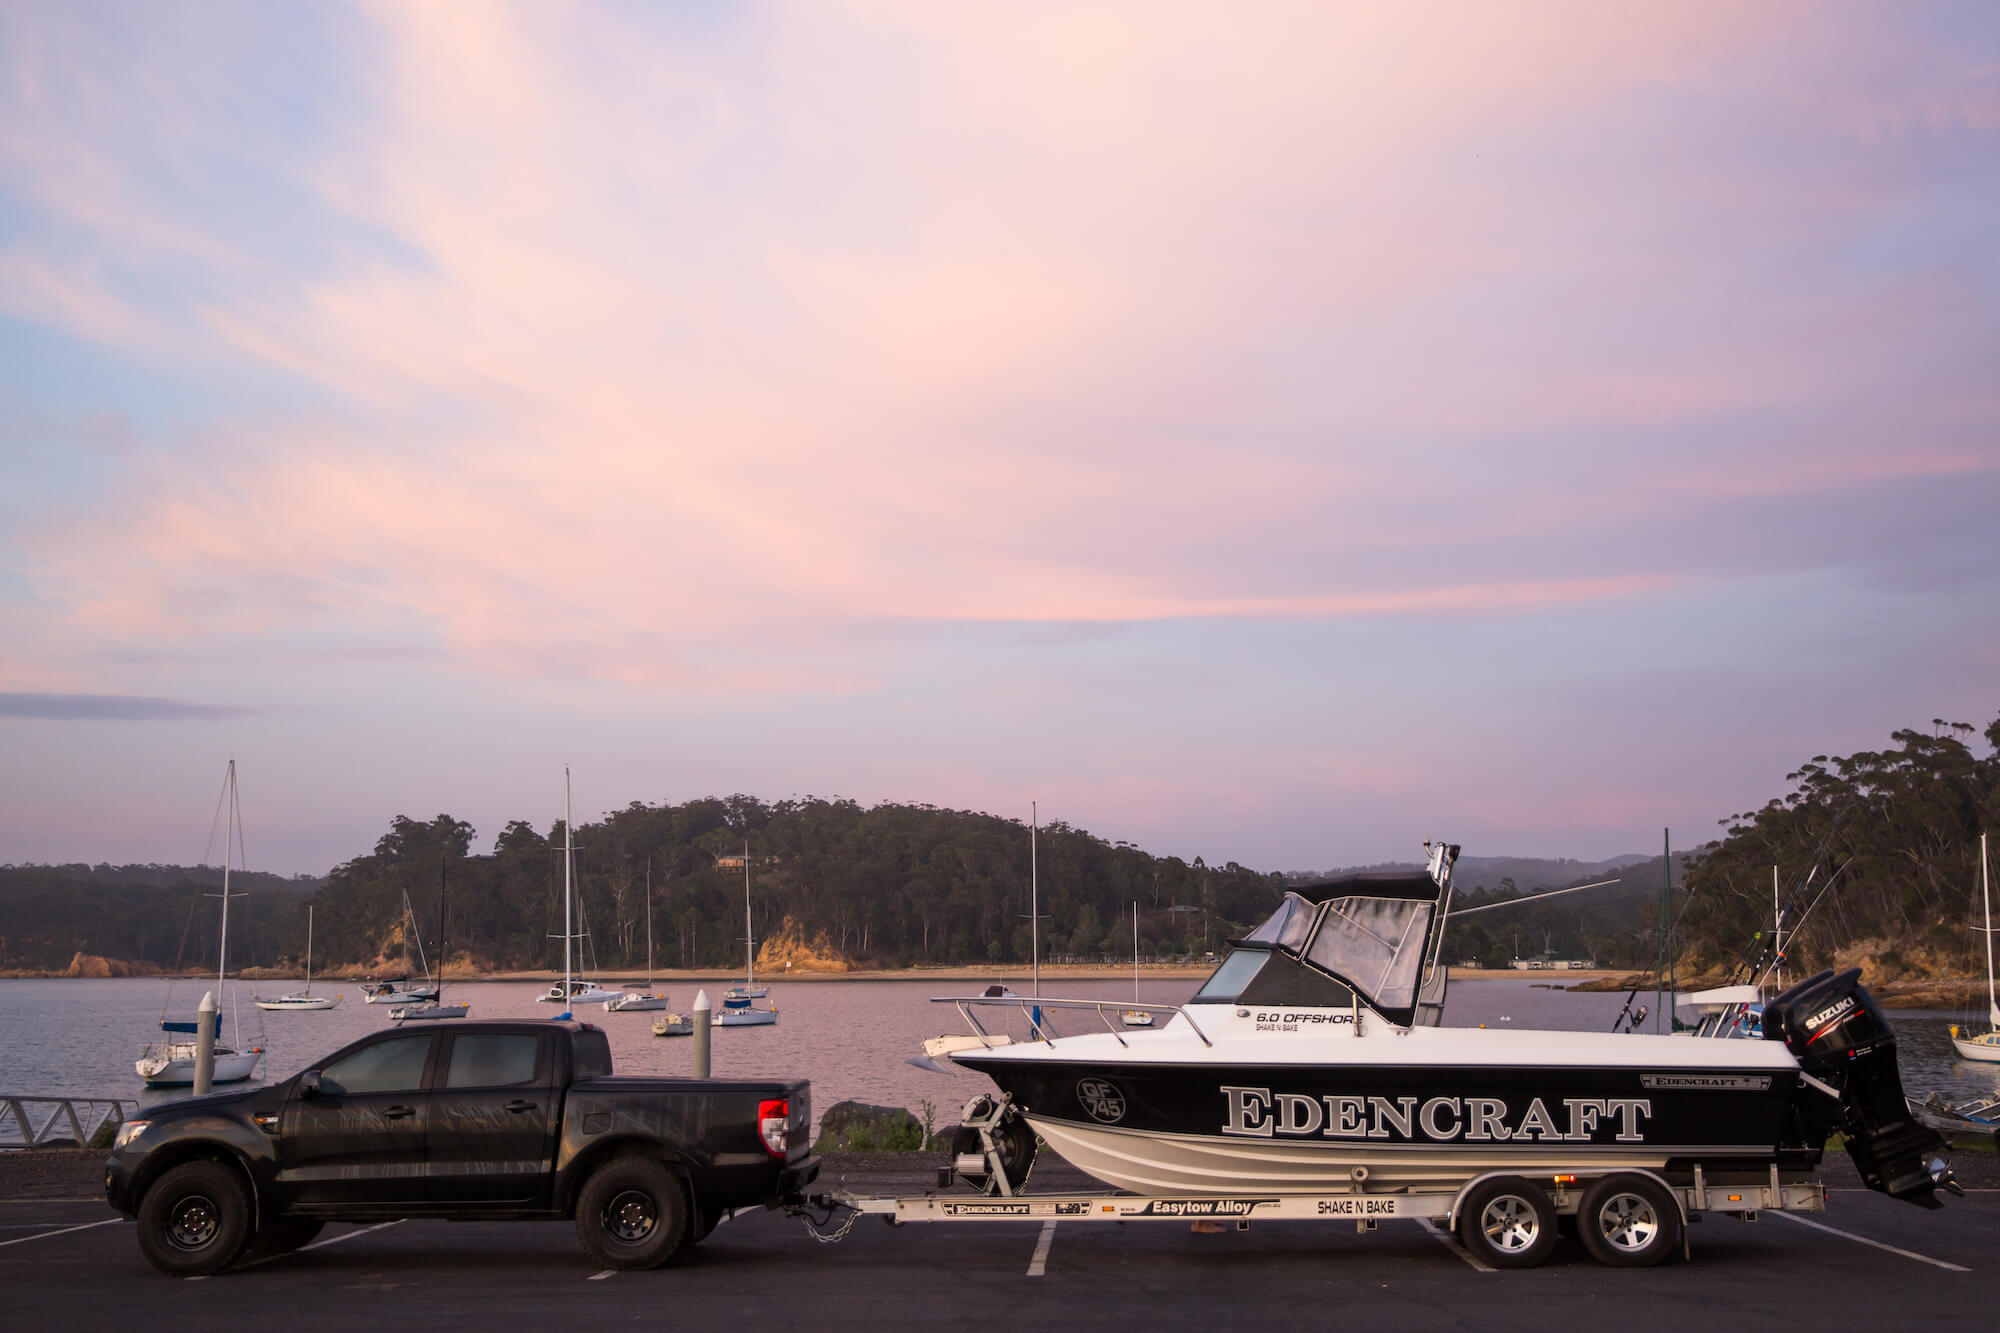 Edencraft 6.0m Offshore being towed on an EasyTow trailer